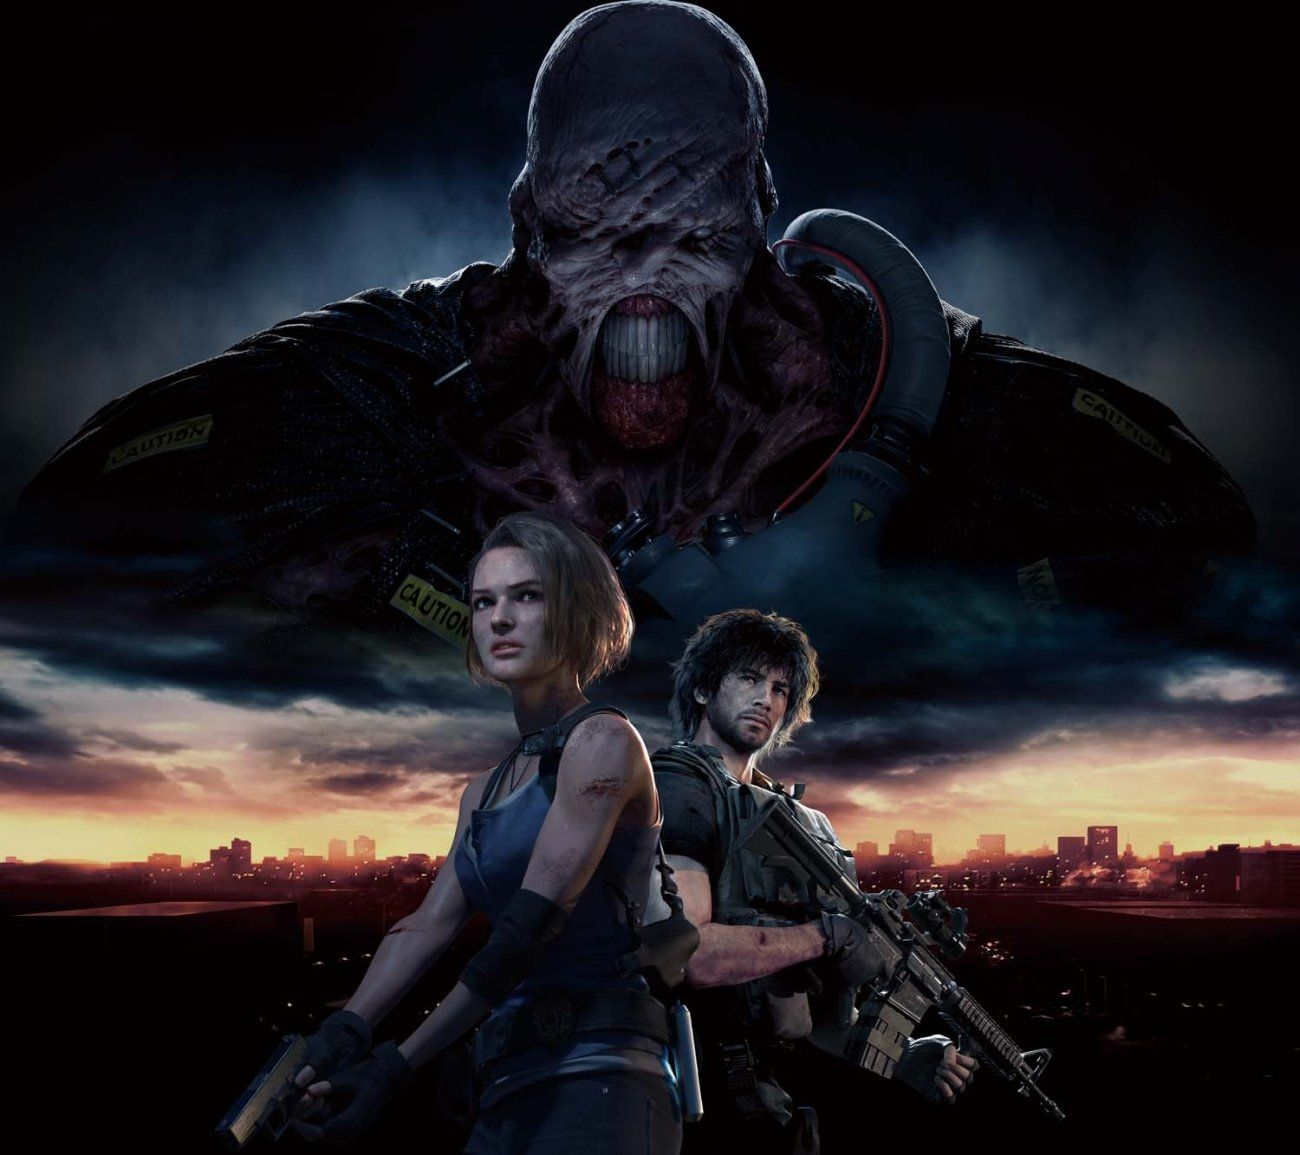 Resident Evil 3 Remake coming April 2020 to PC, PS4, and